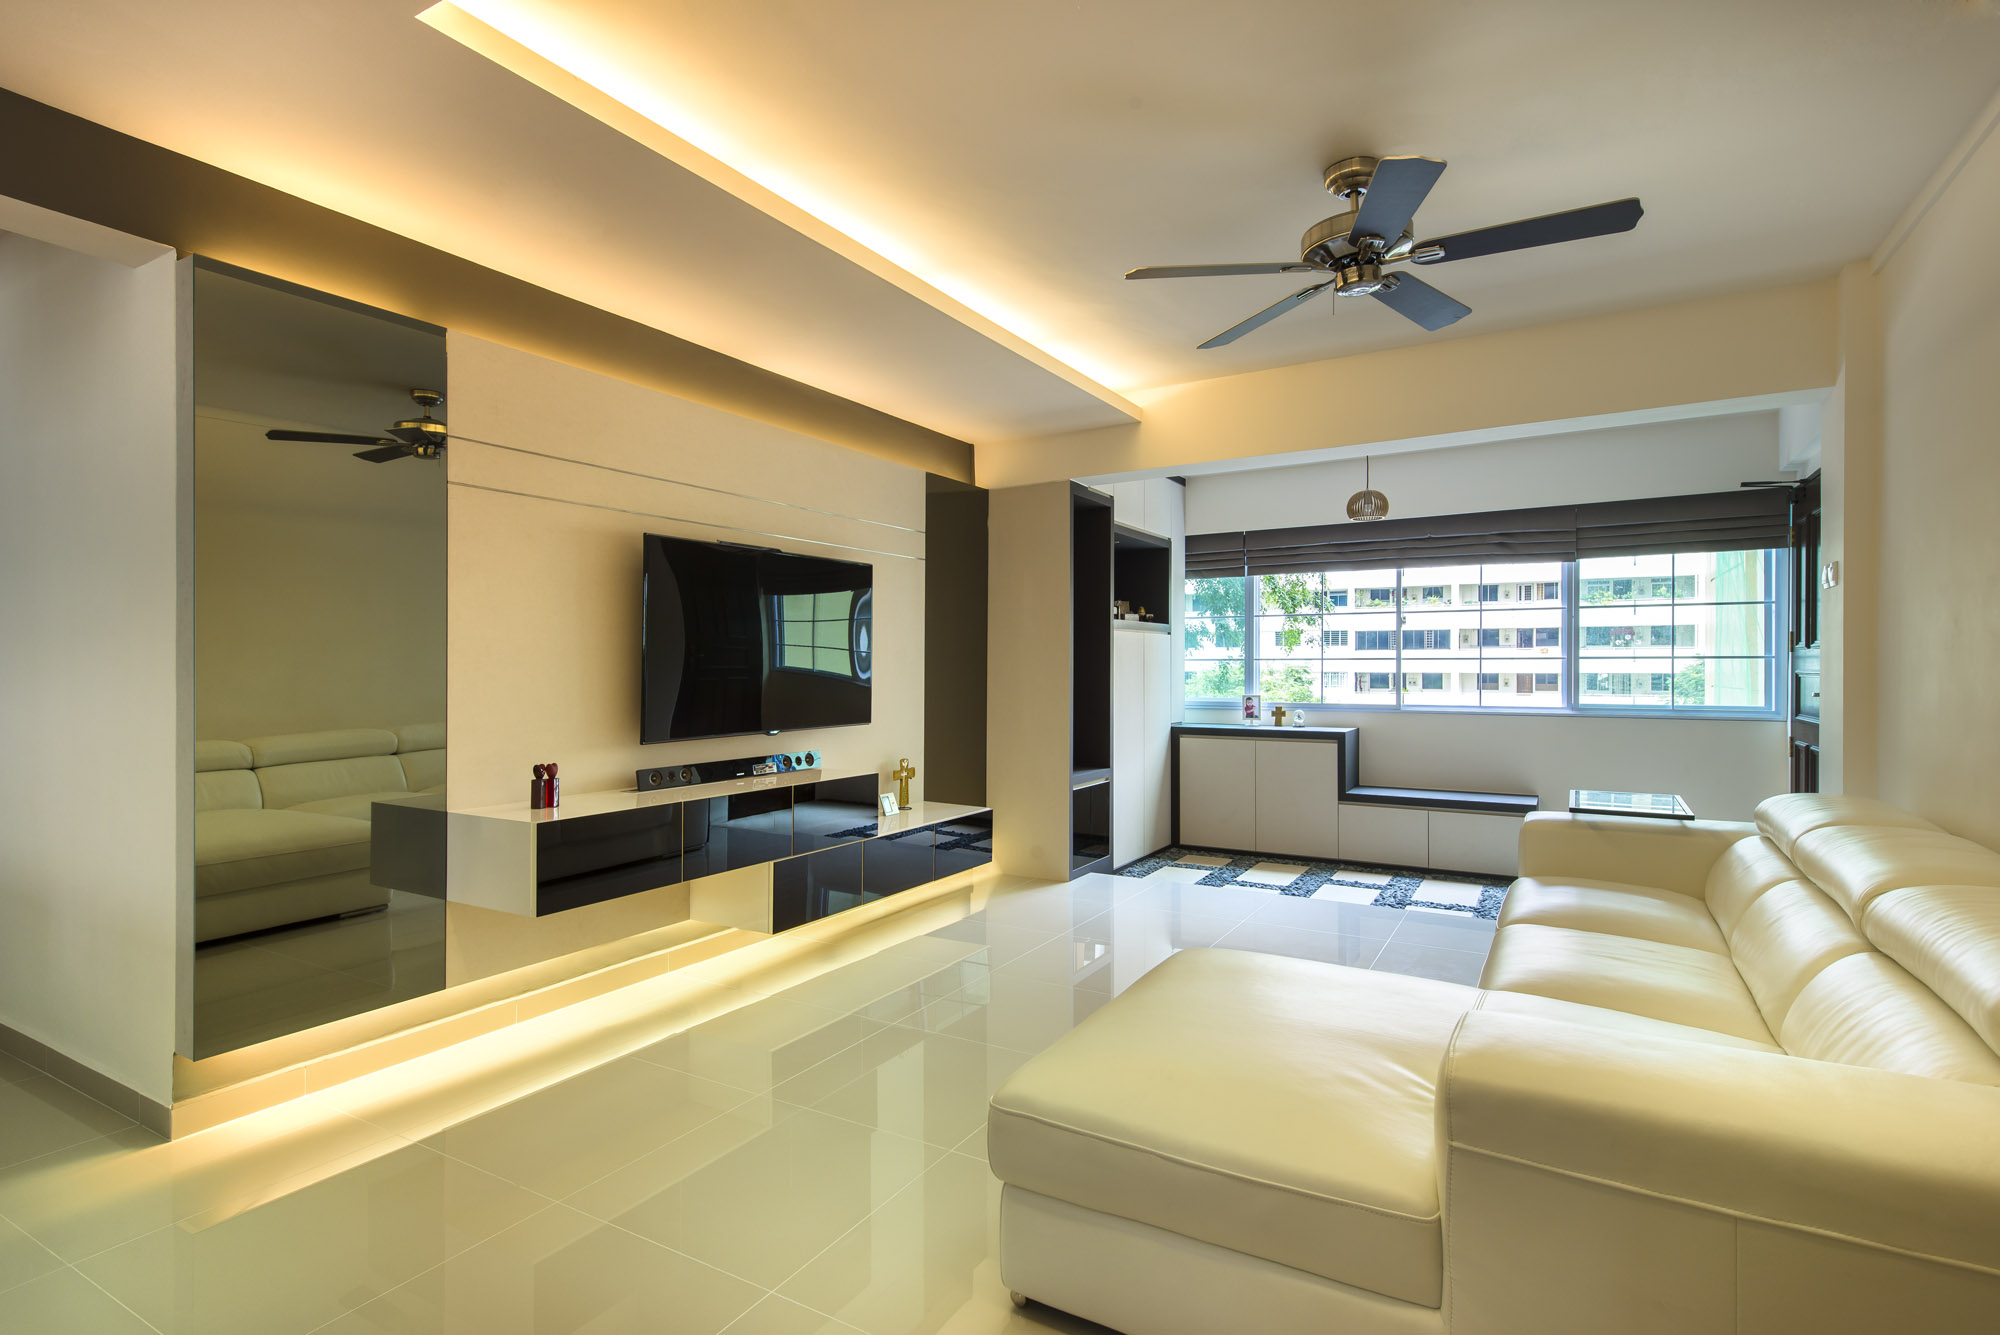 Case study hdb 5 rooms at bedok rezt relax interior for Interior design 5 room hdb